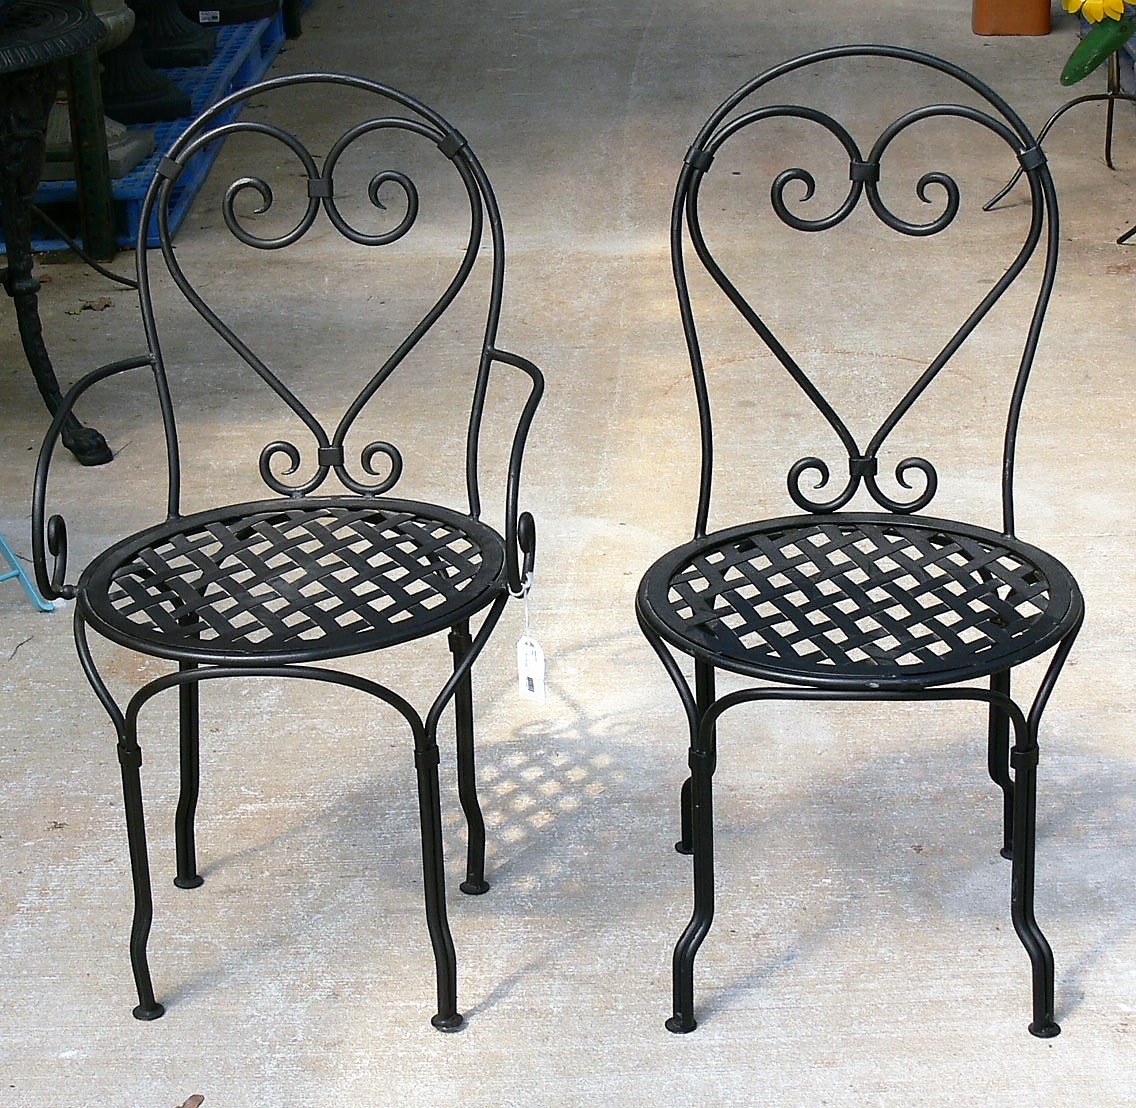 Furniture Market Imports Home Patio Antiques Garden Furniture